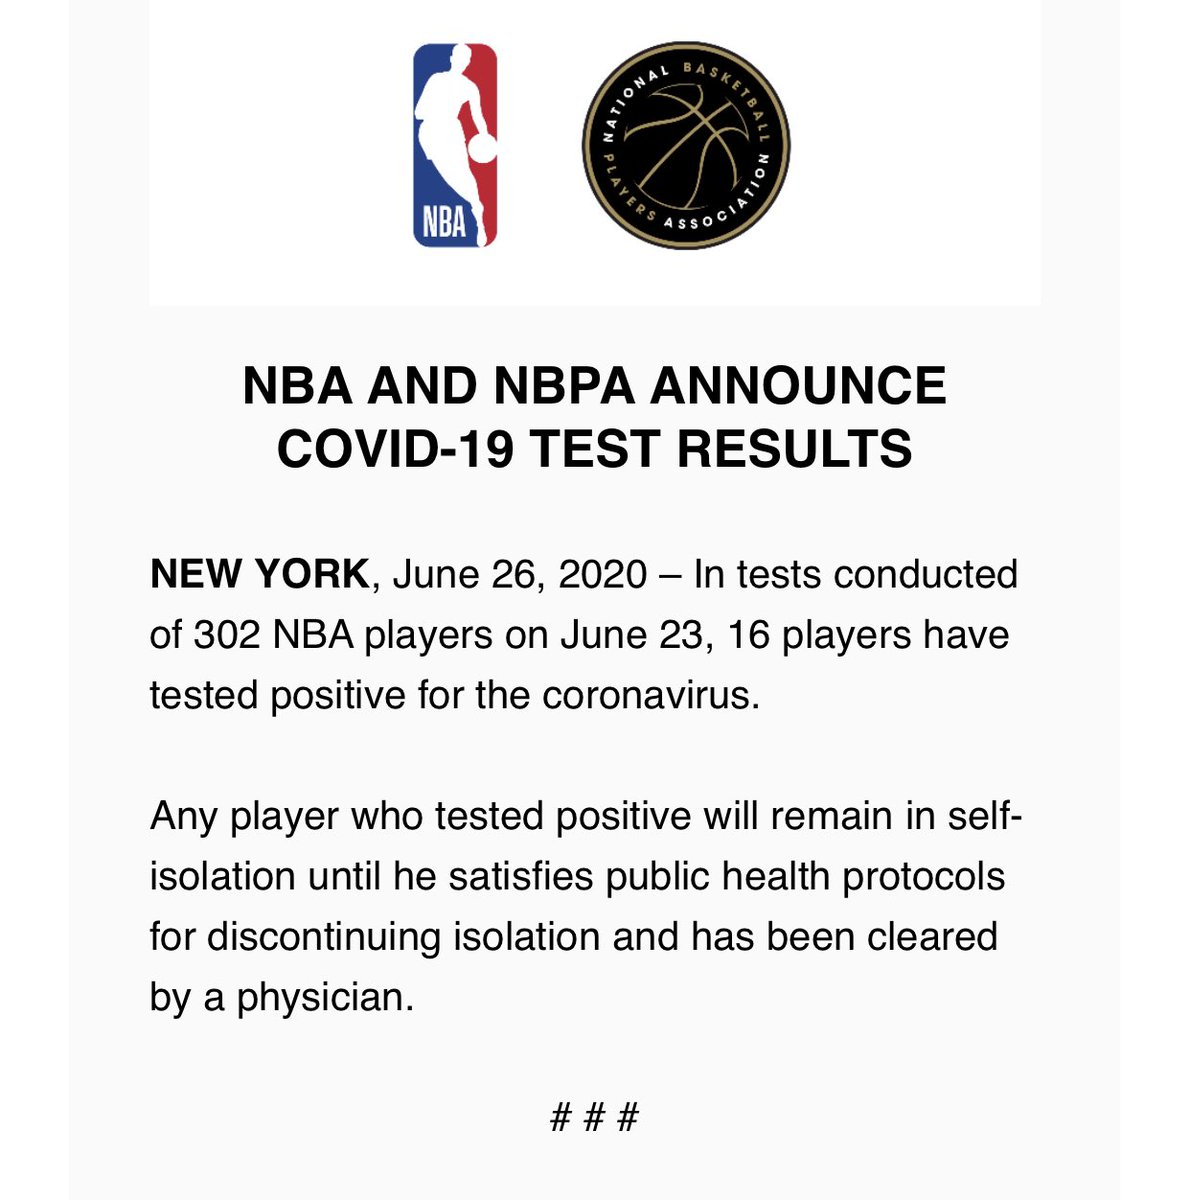 NBA and NBPA announce 16 of 302 tested players tested positive for COVID-19. They will remain in self-isolation and then must be cleared by a physician. https://t.co/pBLSAdYEac